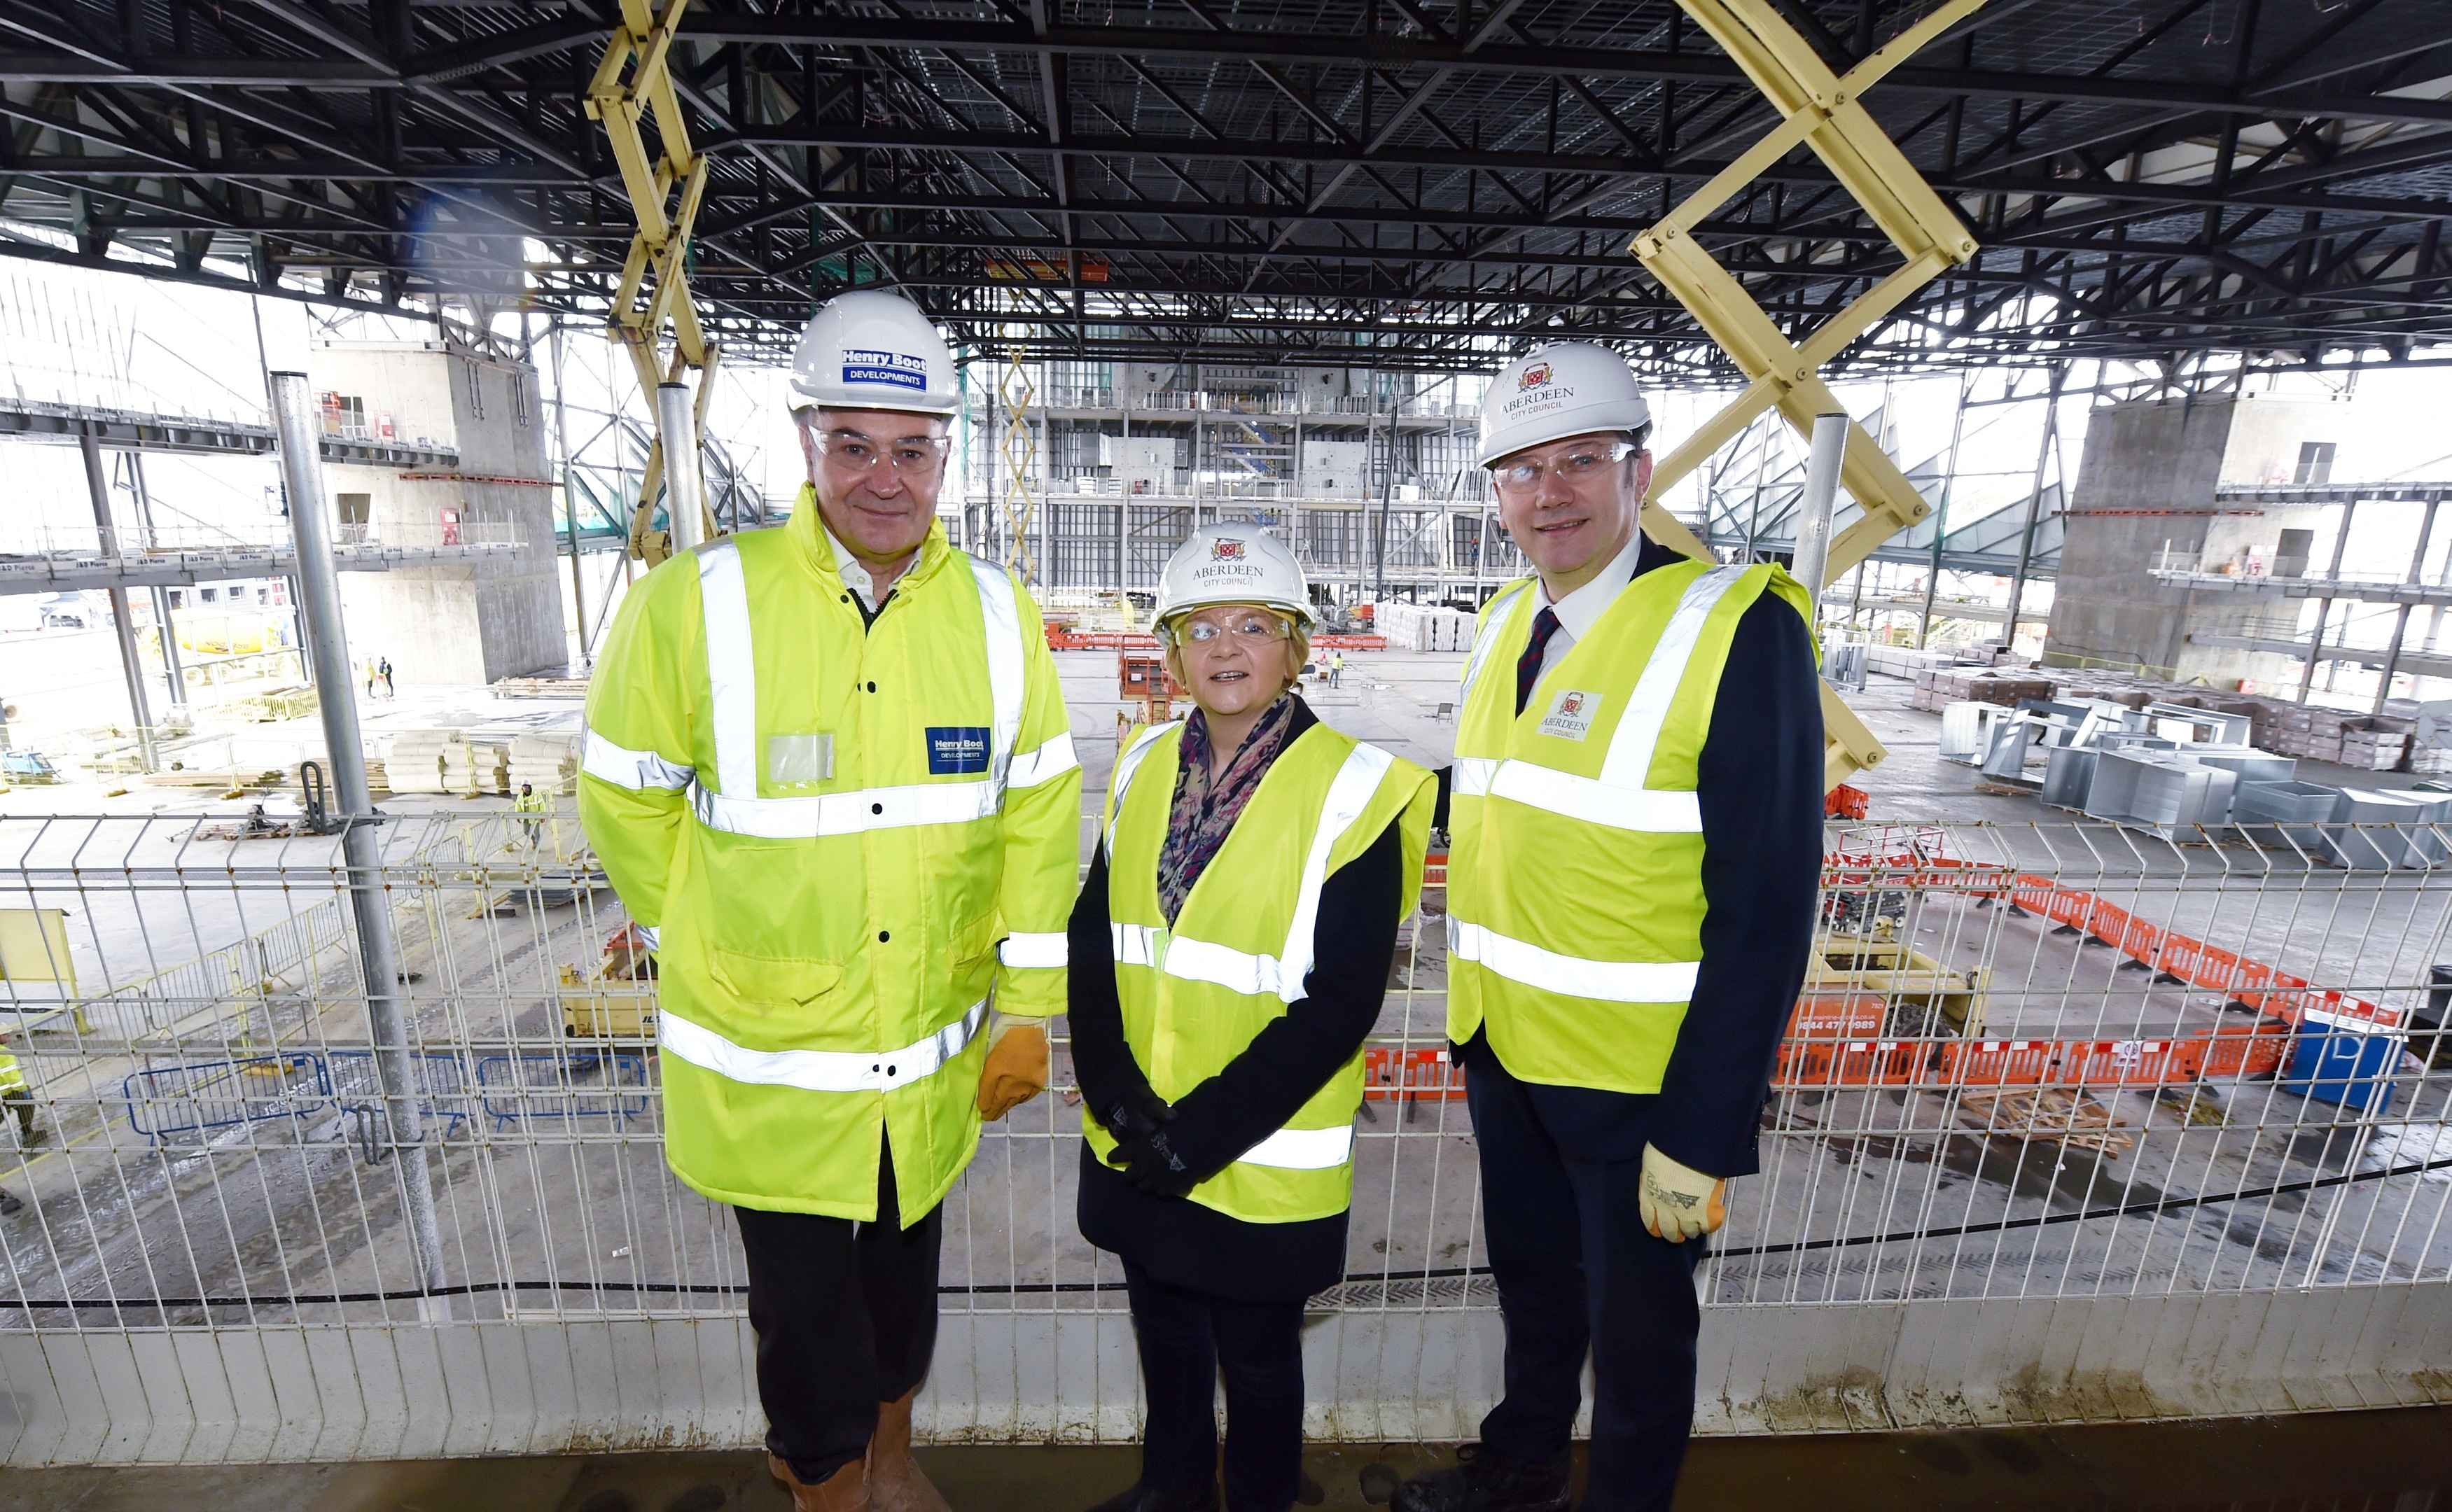 Work continues on the new AECC in Aberdeen as the building programme passes the halfway stage. (from left) Nigel Munro, regional project manager at Henry Boot Development, Aberdeen City Council Co-Leader Councillor Jenny Laing and Co-Leader Douglas Lumsden. Picture by COLIN RENNIE  March 13, 2018.